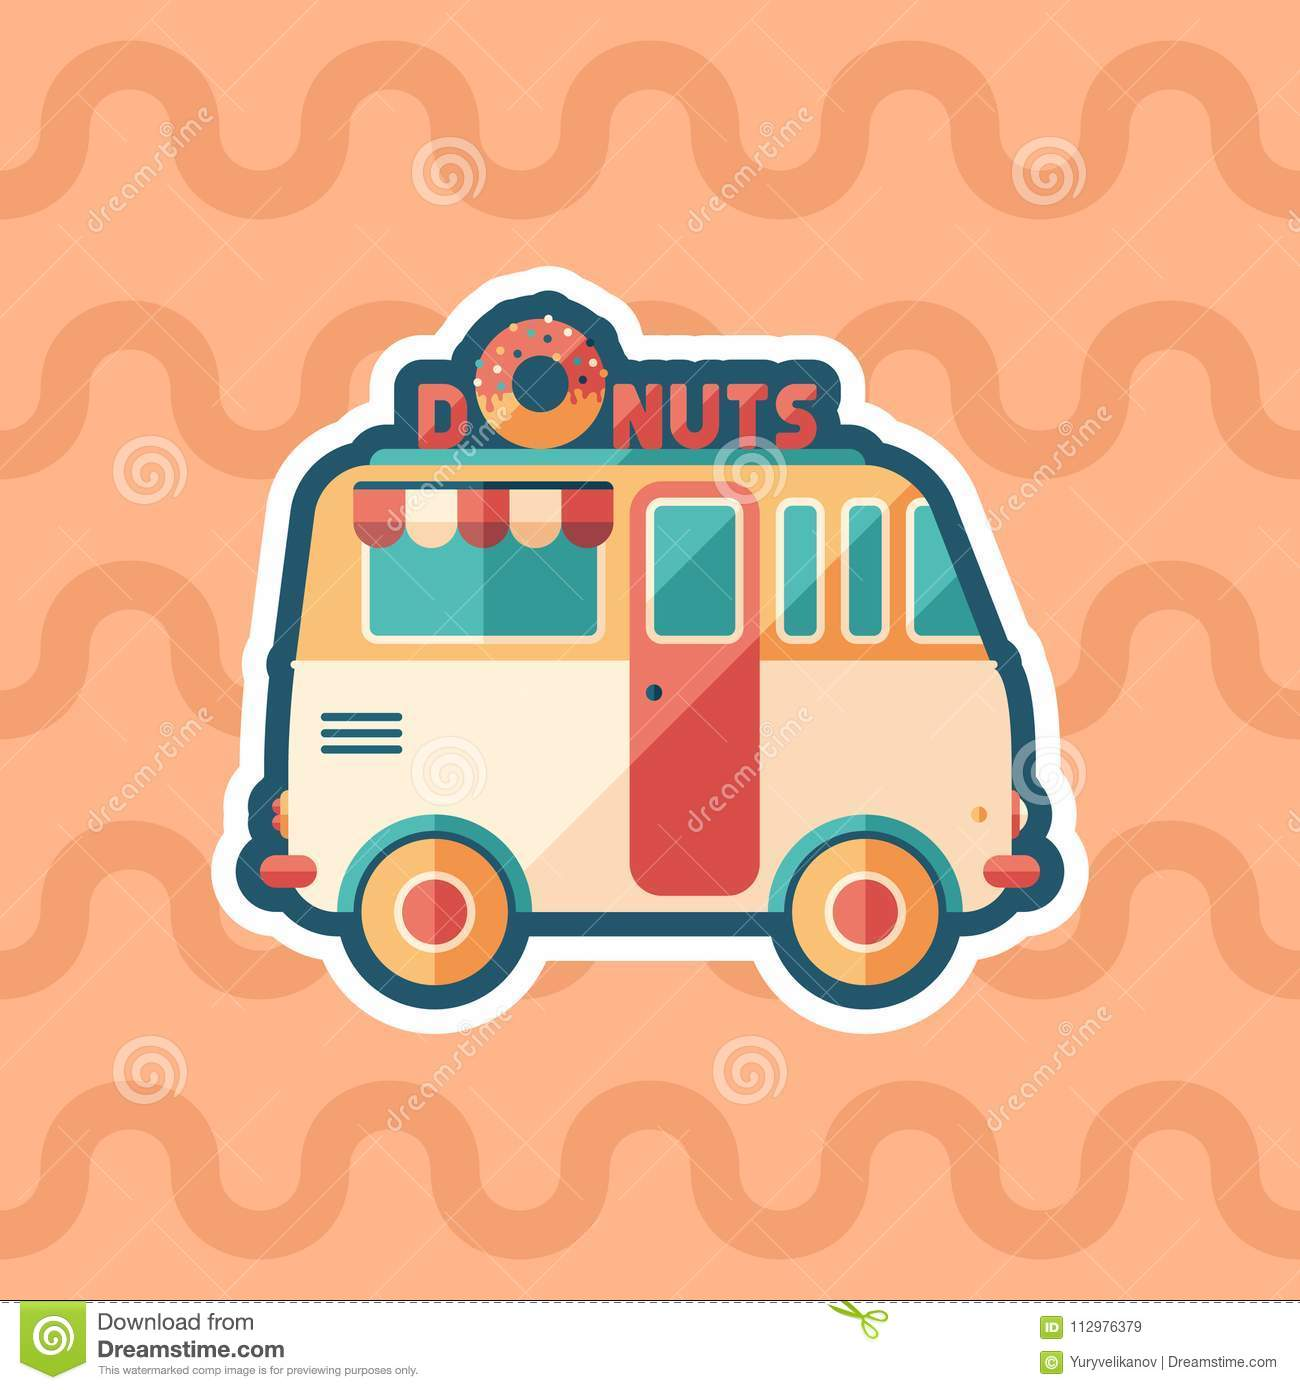 Donuts van sticker flat icon with color background.